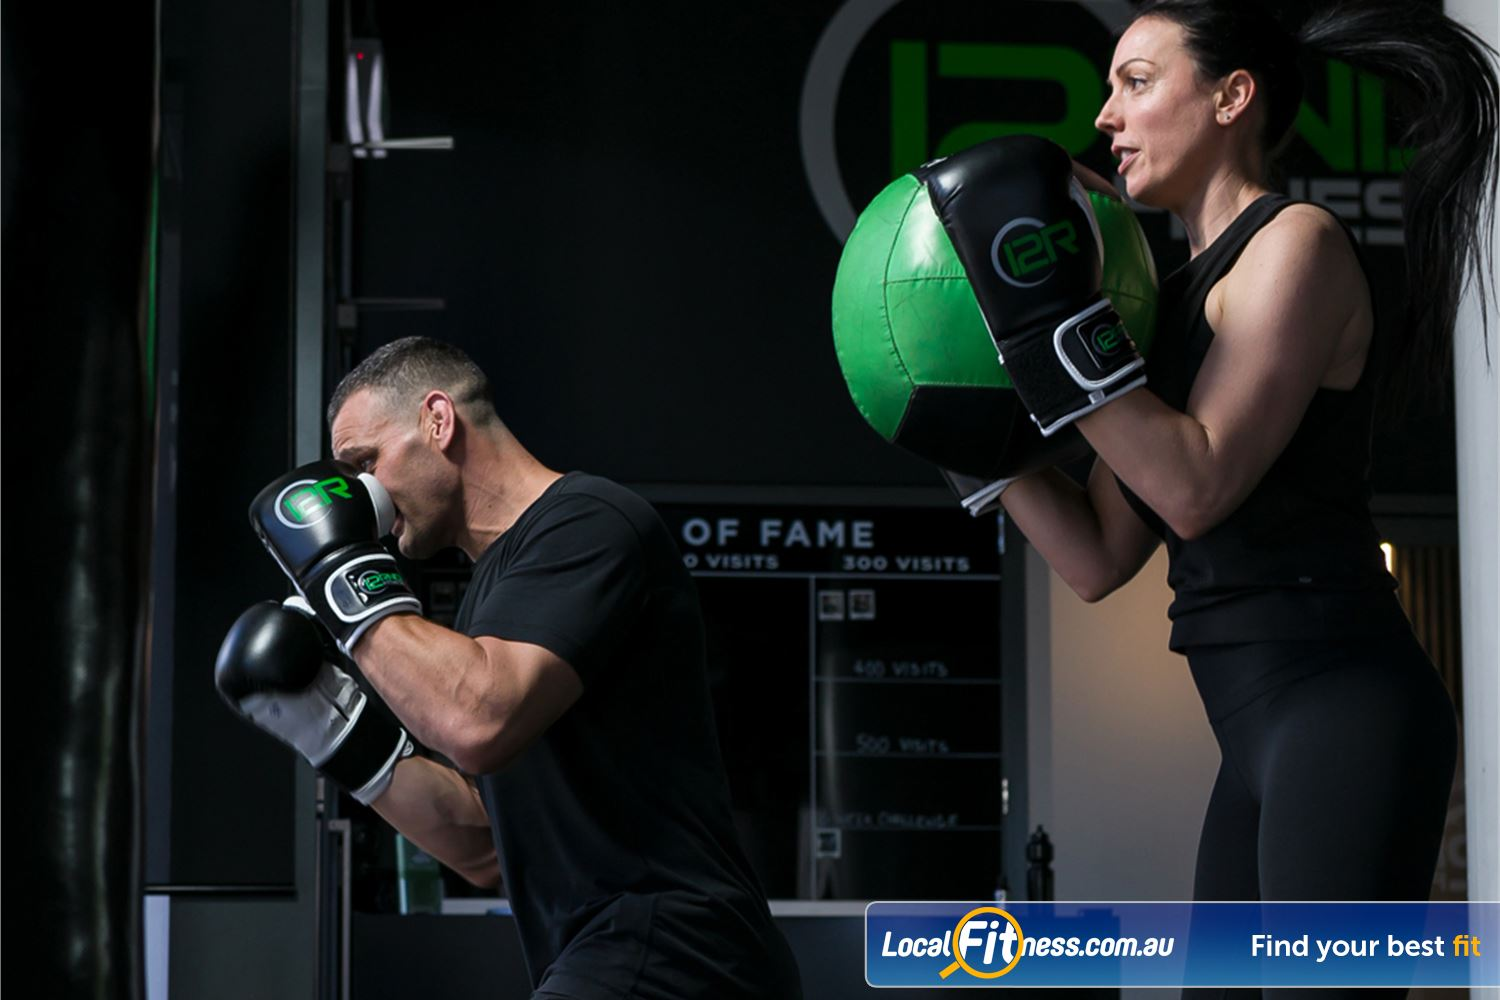 12 Round Fitness Near Canterbury Combining 3-minute boxing rounds to really give you a workout.